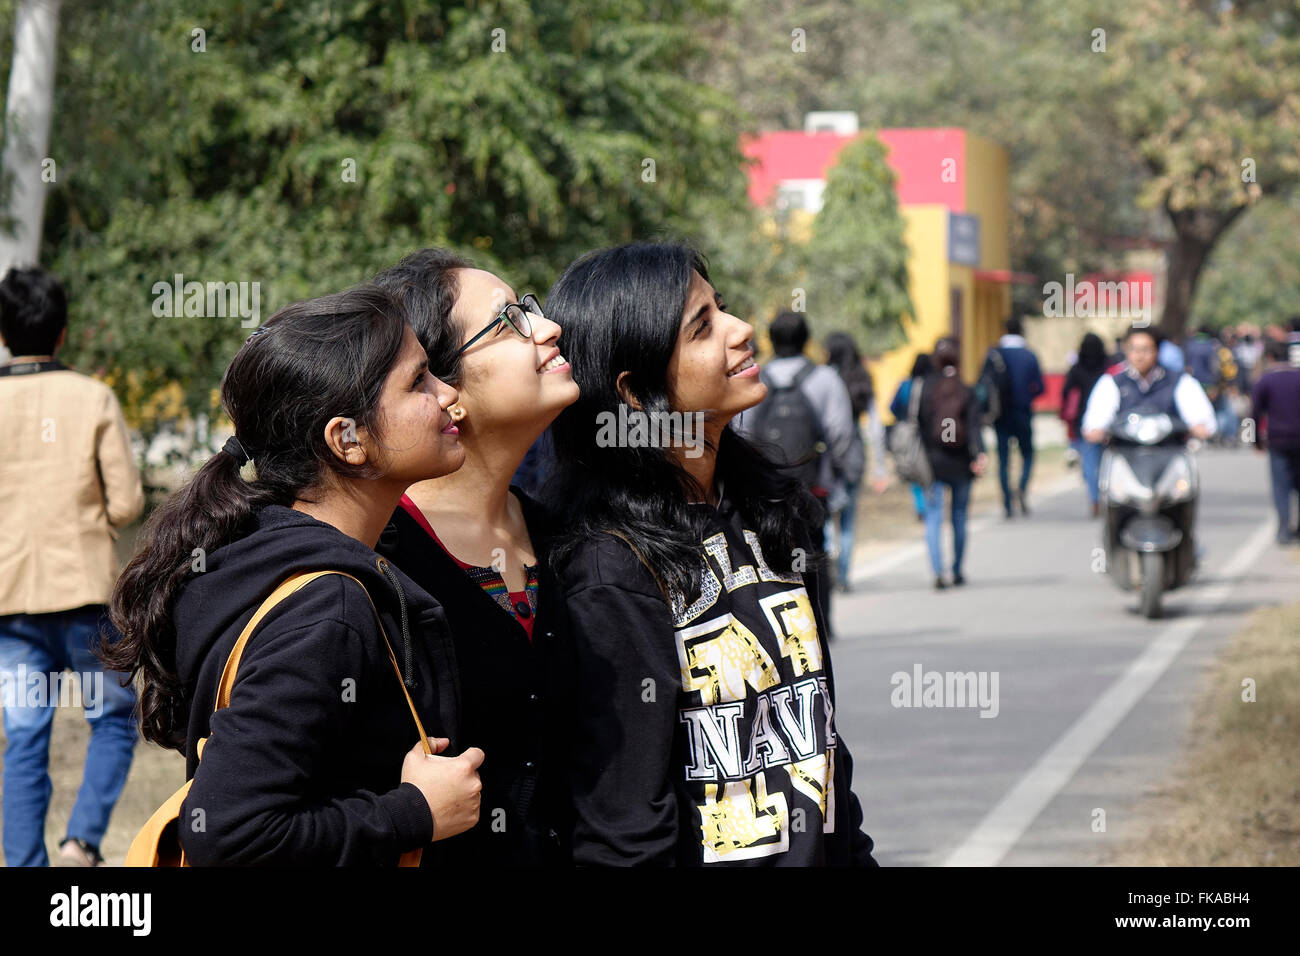 College Girls India Stock Photos & College Girls India Stock